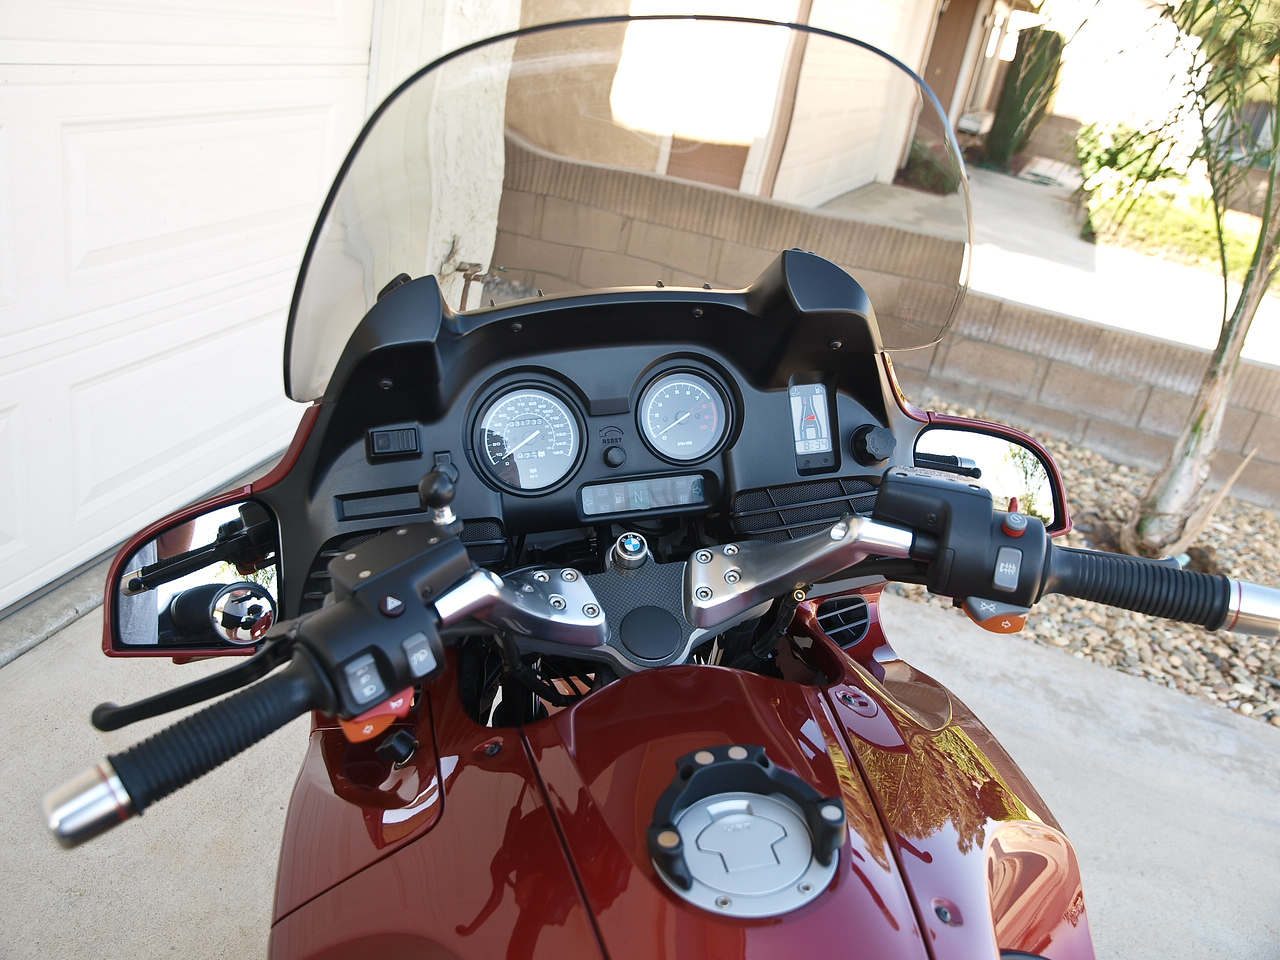 """I also didn't list the carbon fiber trim on the triple tree.  No key scuffs that way.  And the ignition key is BMW logo.  You can also see the Marsee """"corona"""" magnetic tank bag mount in this photo.  I also have little rotating """"blind spot"""" mirrors on the lower inboard corner of the mirrors.  They work great."""